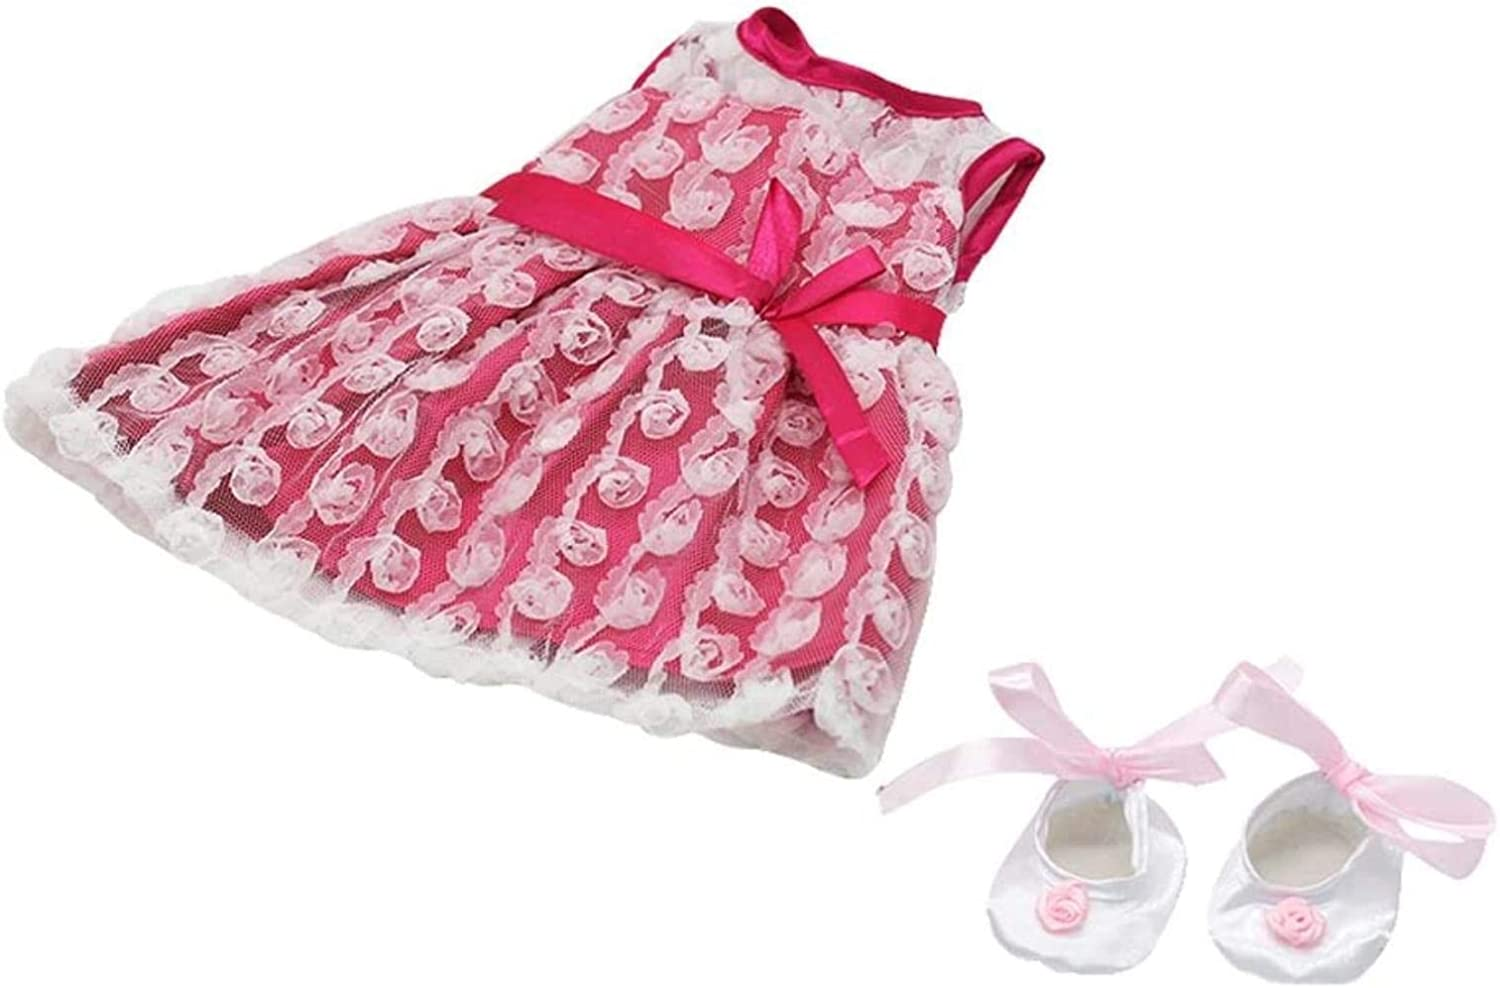 TONG Pink Rose Denver Mall Lace San Diego Mall Dress with Shoes Dance 18'' Satin Fits Ameri